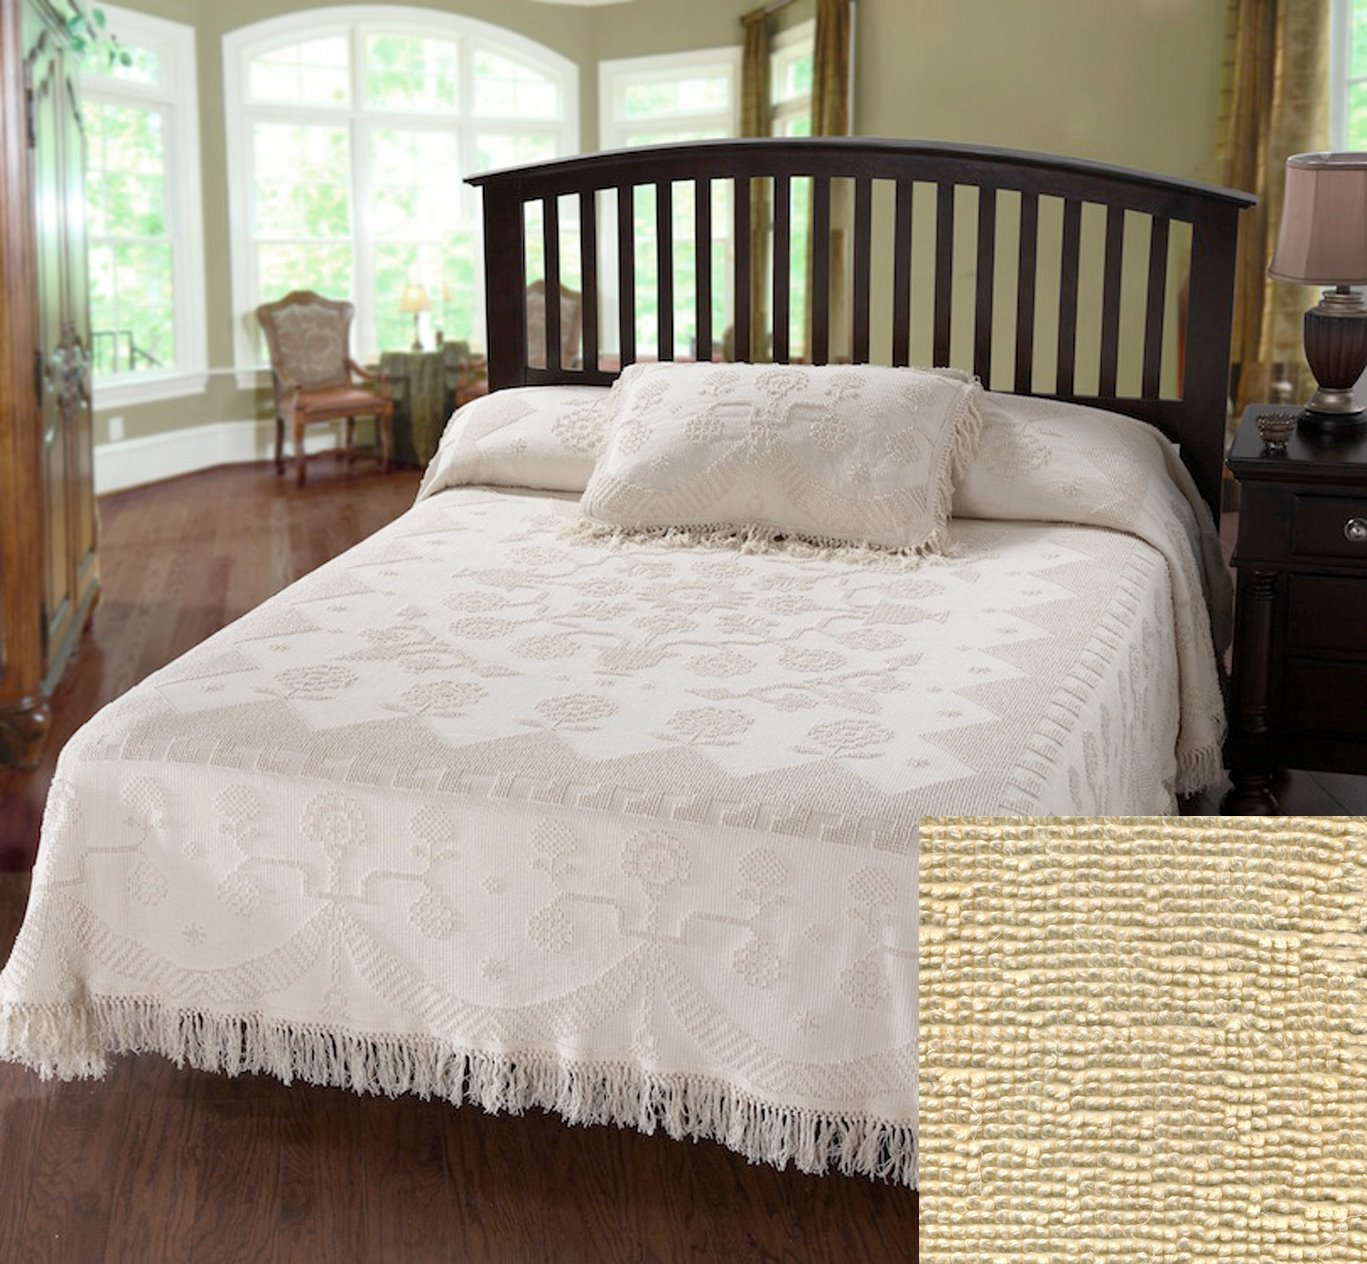 George Washington Bedspread Full Antique